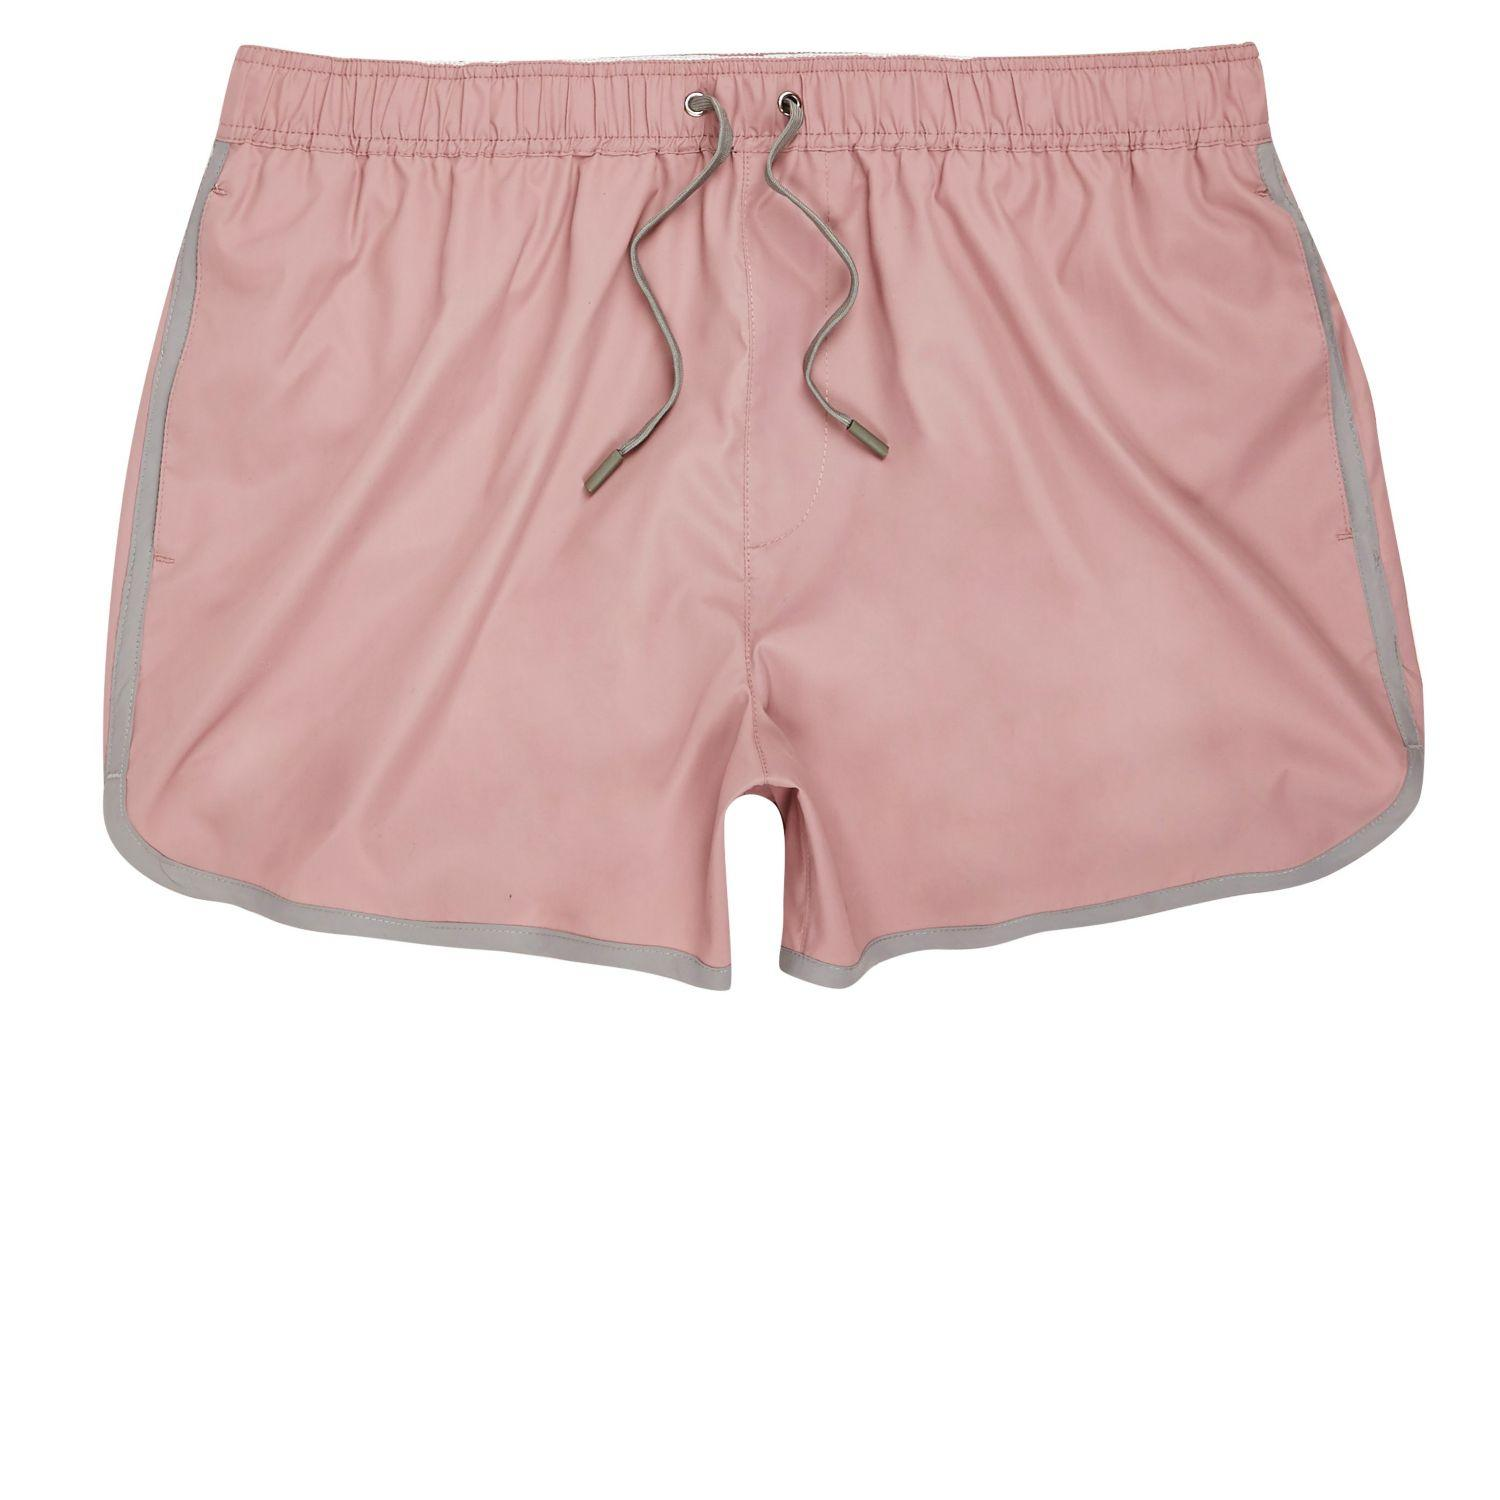 Men's Swim Shorts & Swimming Trunks 44 results 1 Nike Outline Logo Pink Swim Shorts Freshen up your swim shorts and swimming trunks for summer with our edit, featuring styles from adidas, Calvin Klein, Urban Renewal Vintage, Tommy Hilfiger, Farah and more.